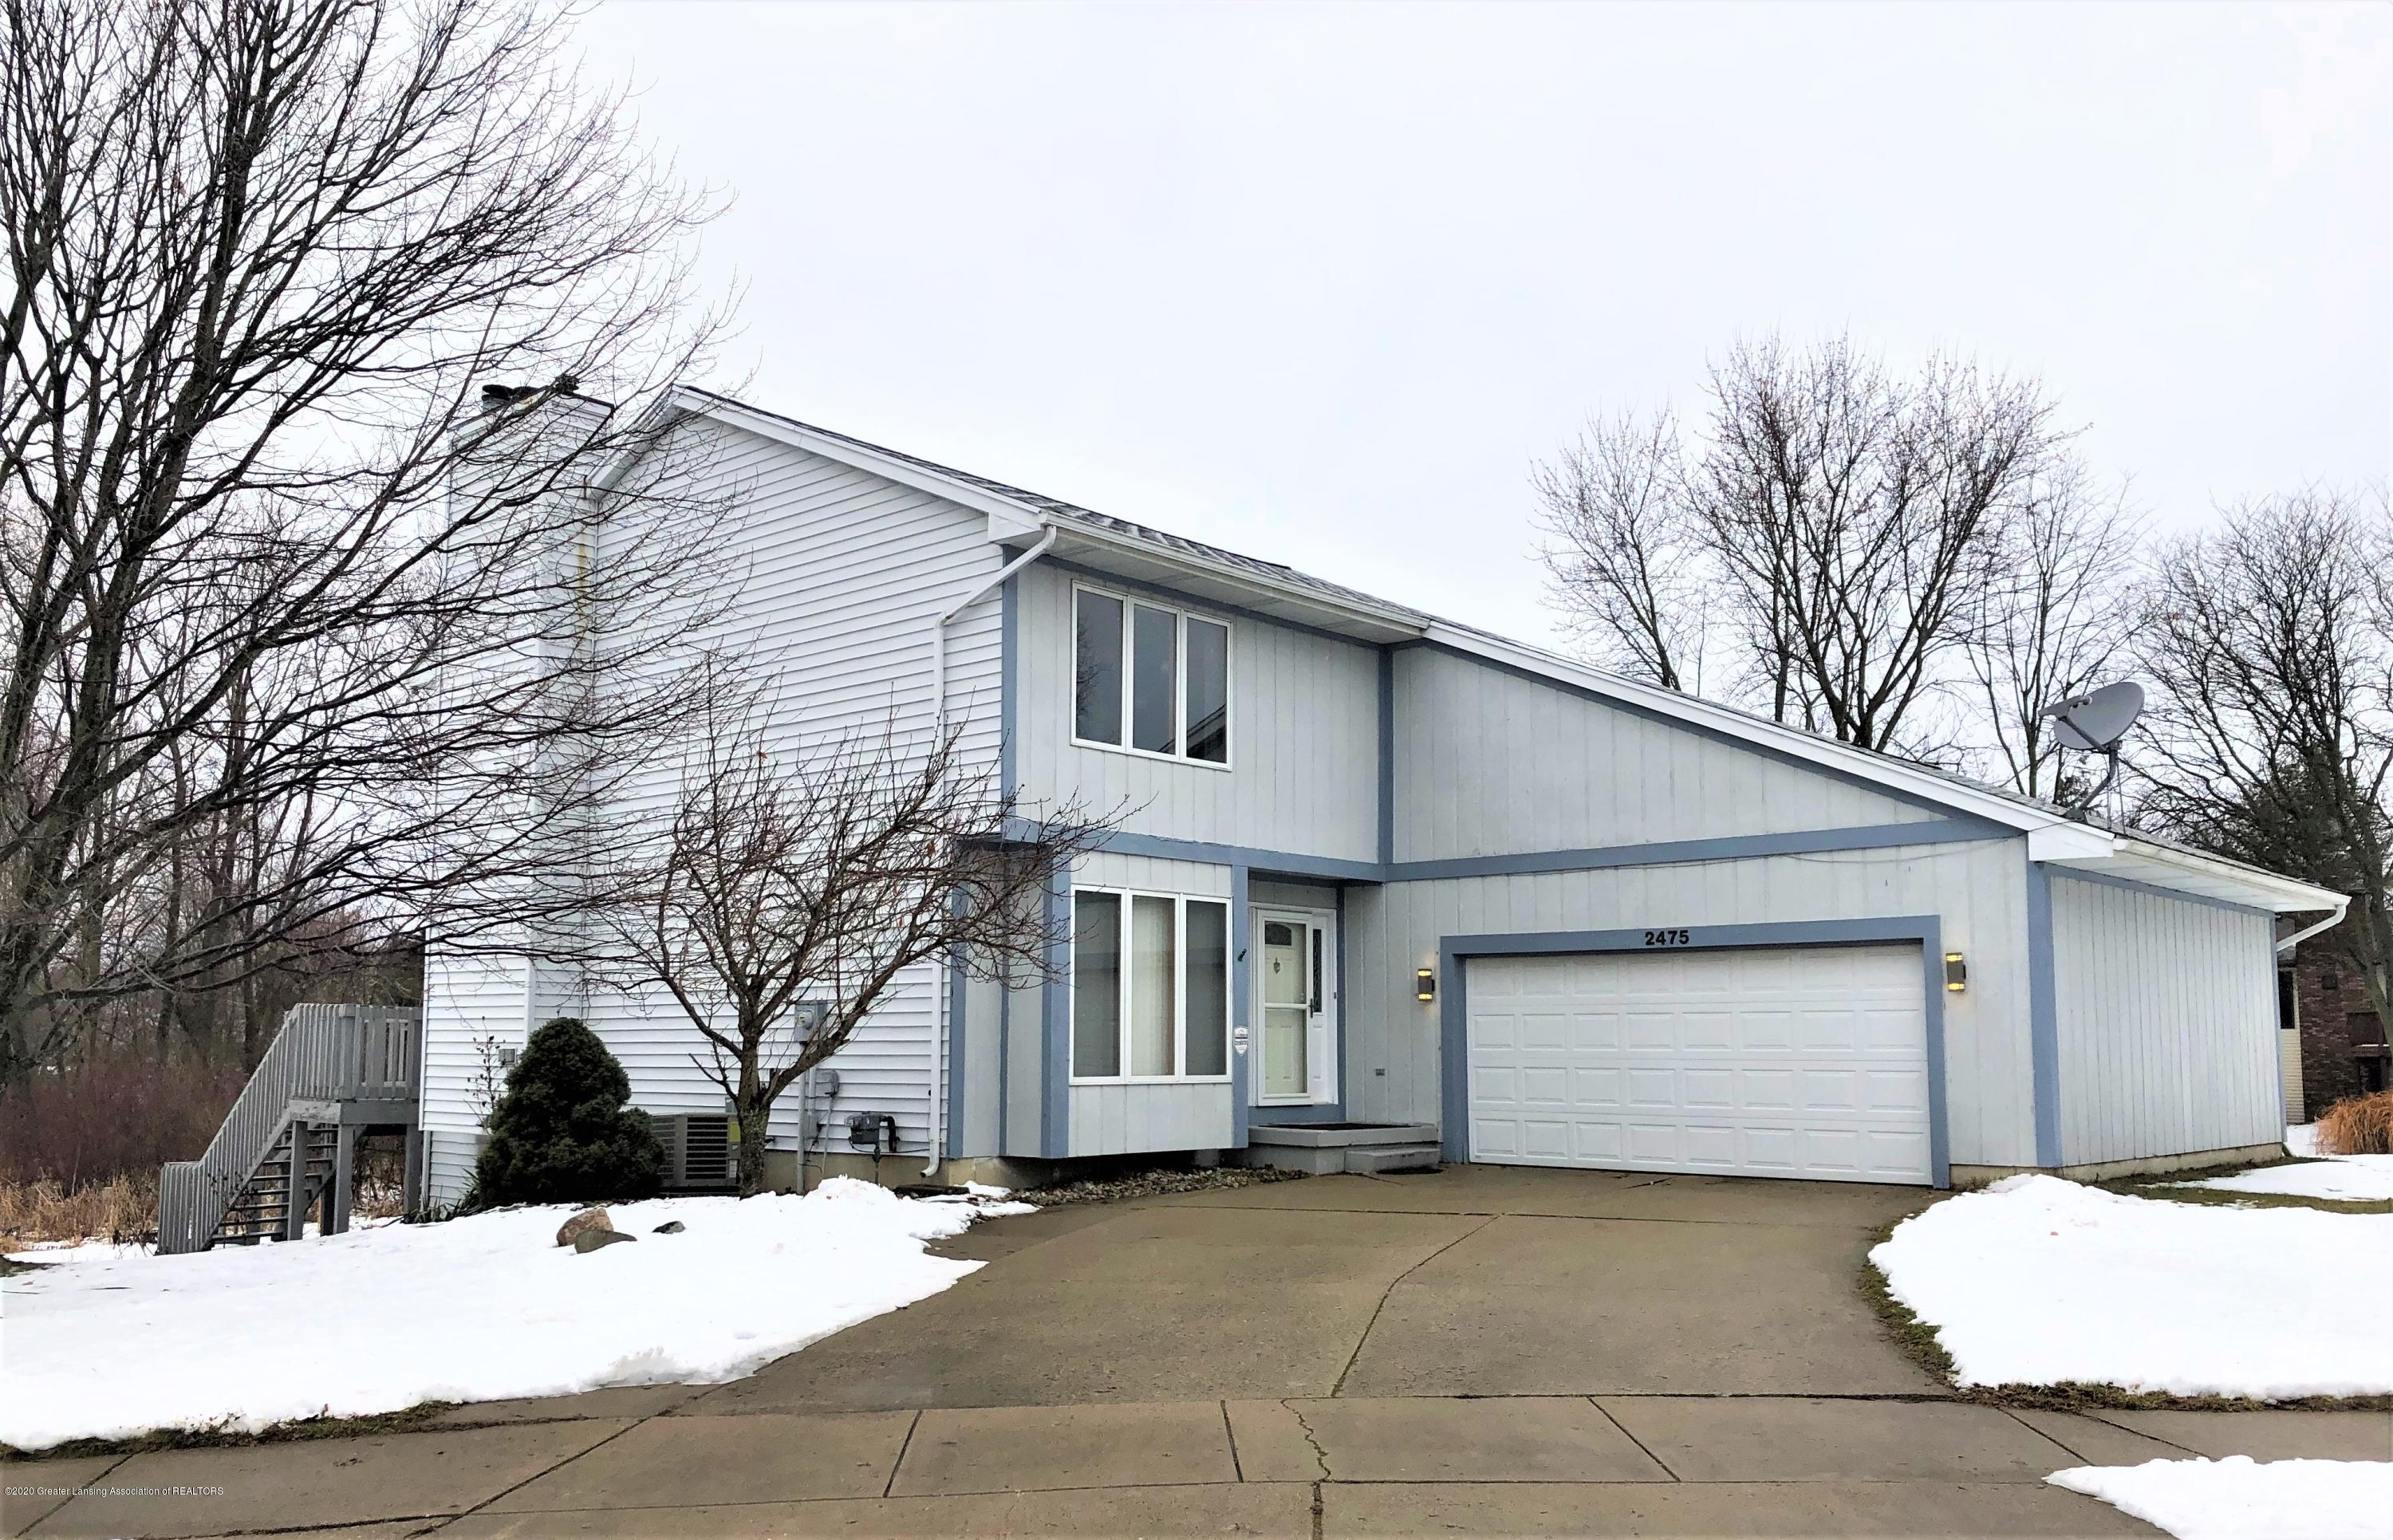 2475 Walenjus Ct - Front - 1